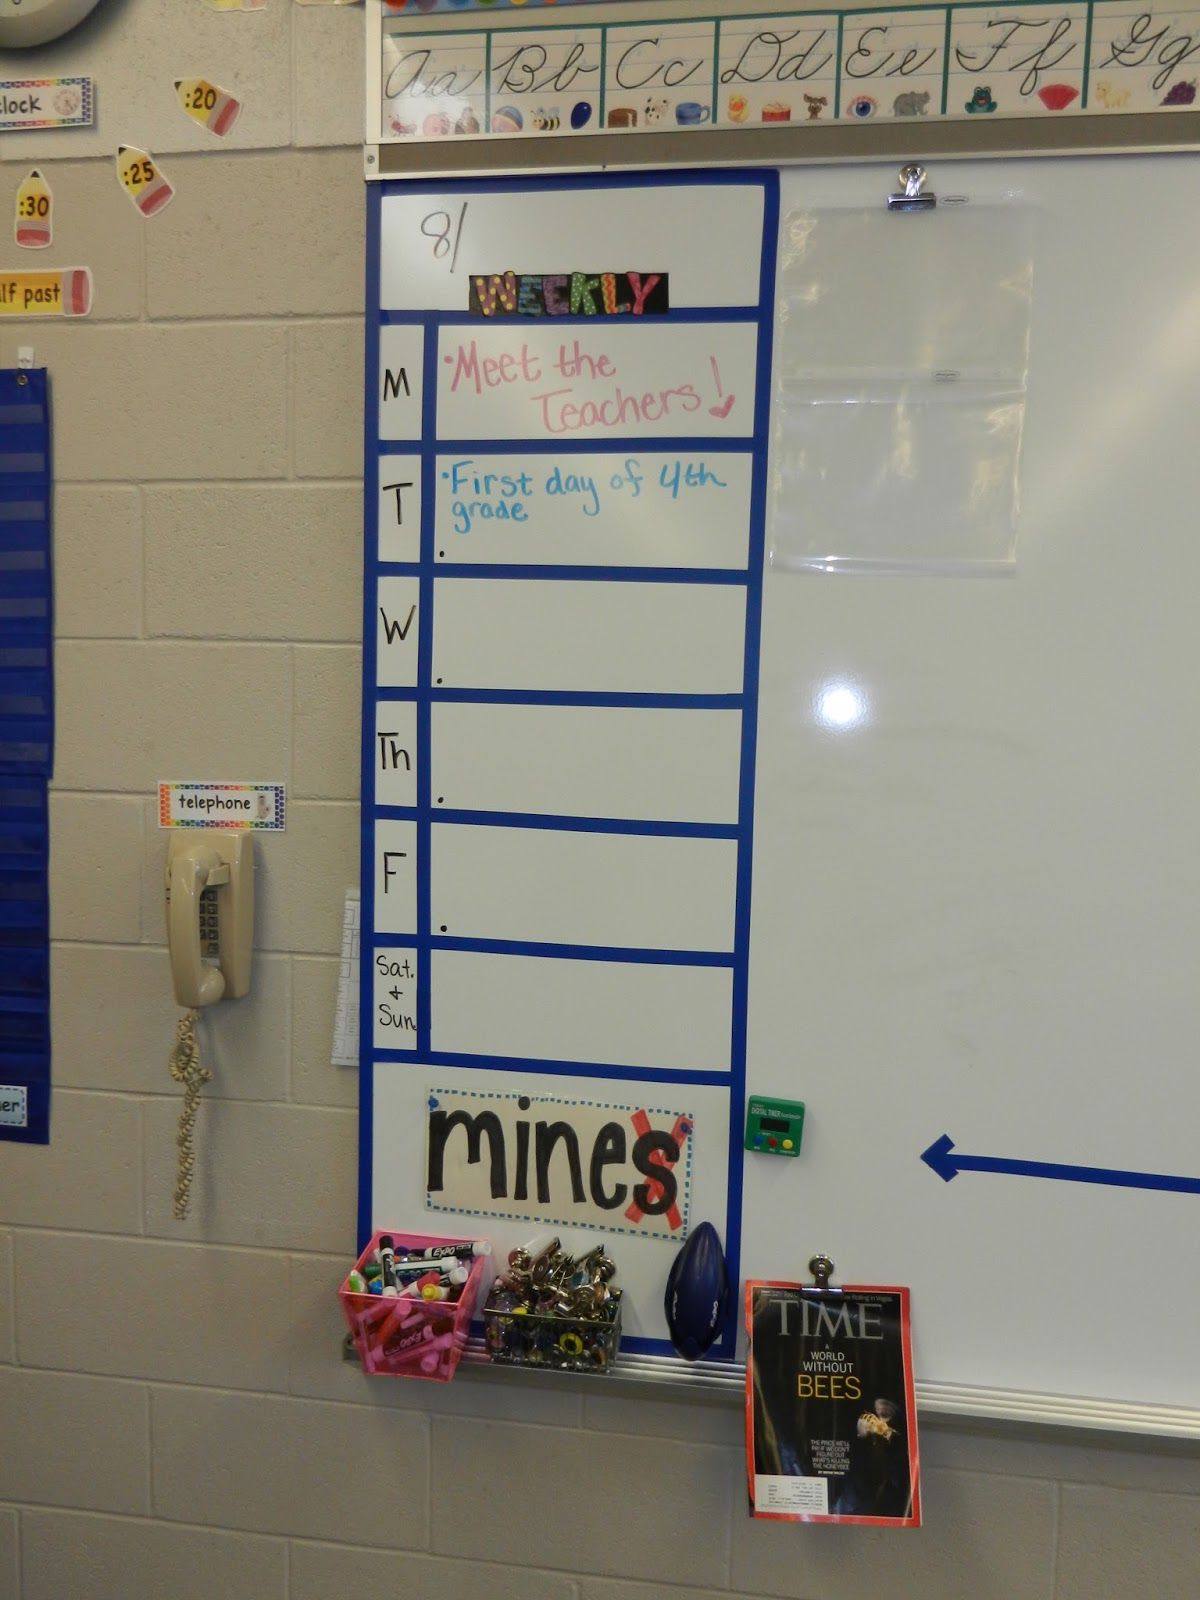 Classroom Decoration Whiteboard : Teacher classroom tour with bright and happy colors